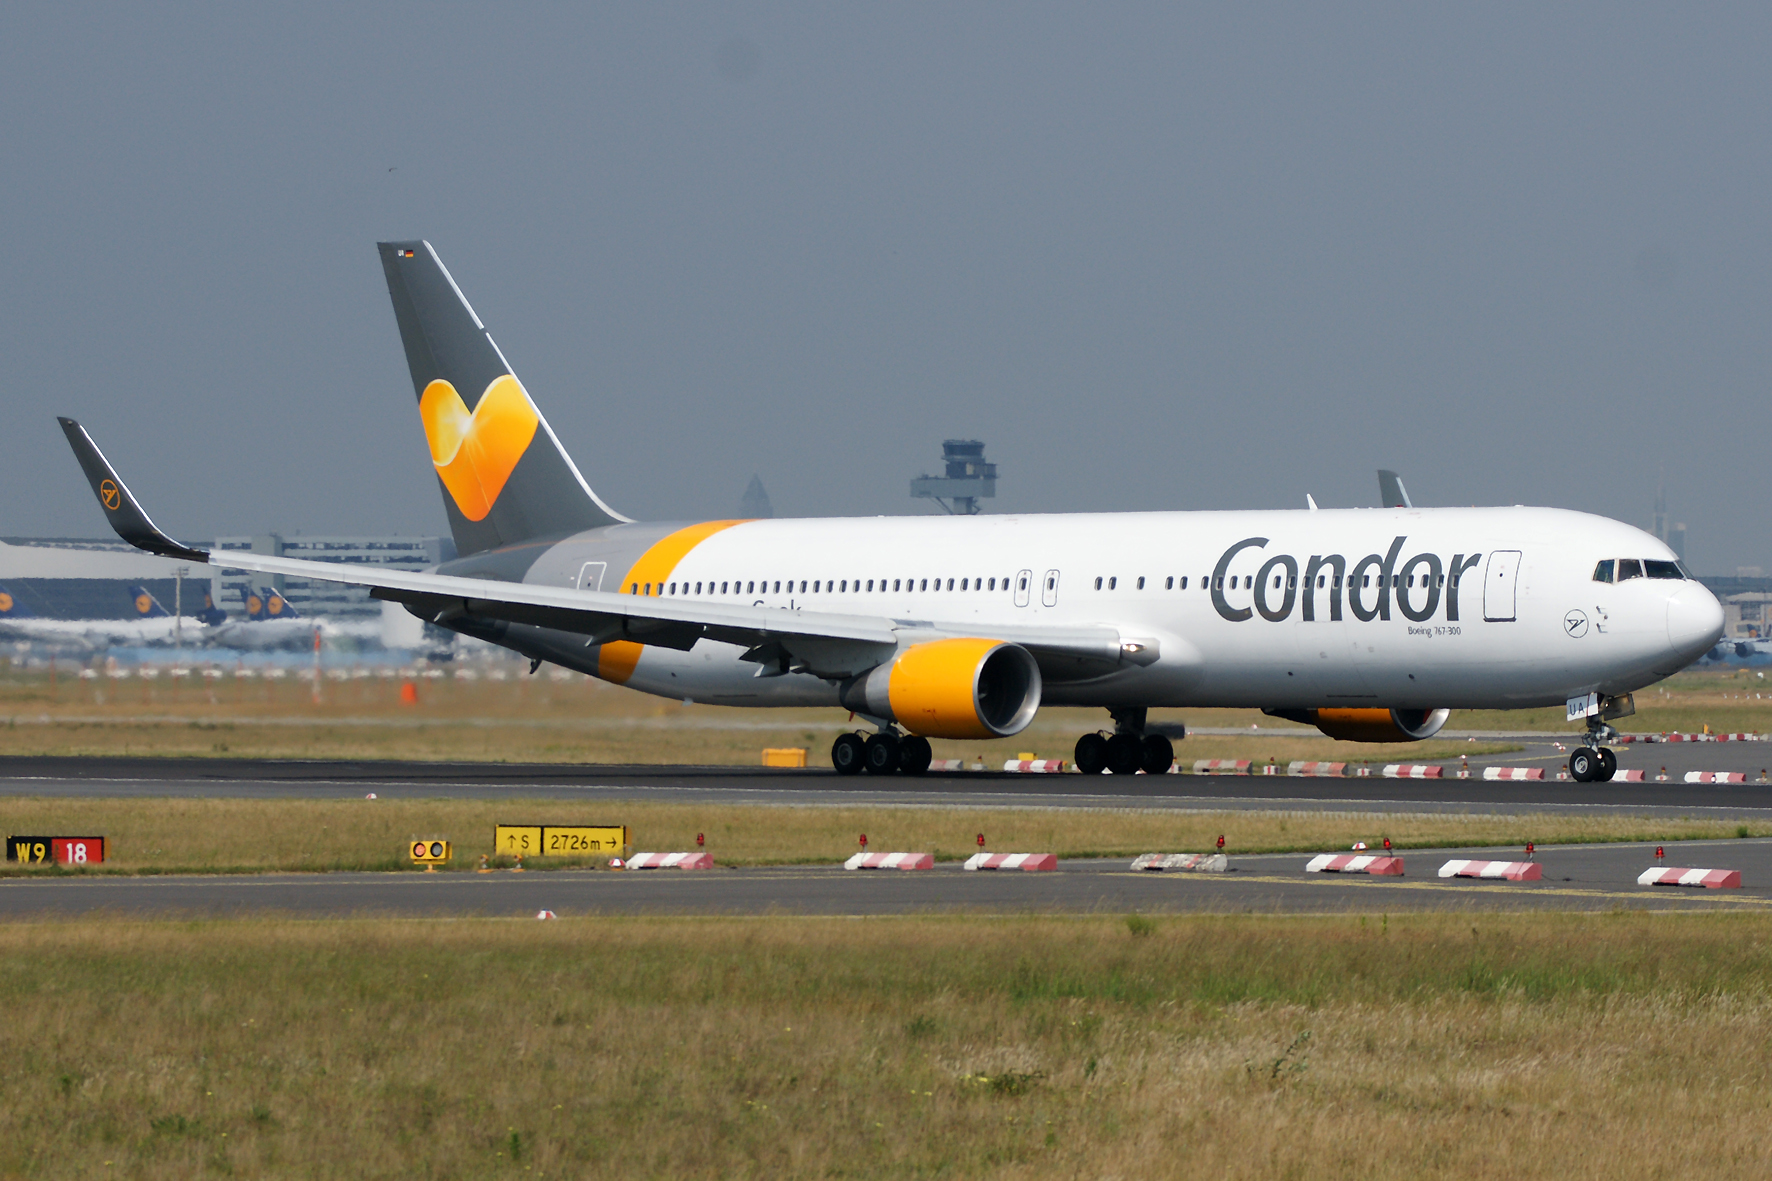 Condor Airlines begins service to Frankfurt in May 2018.